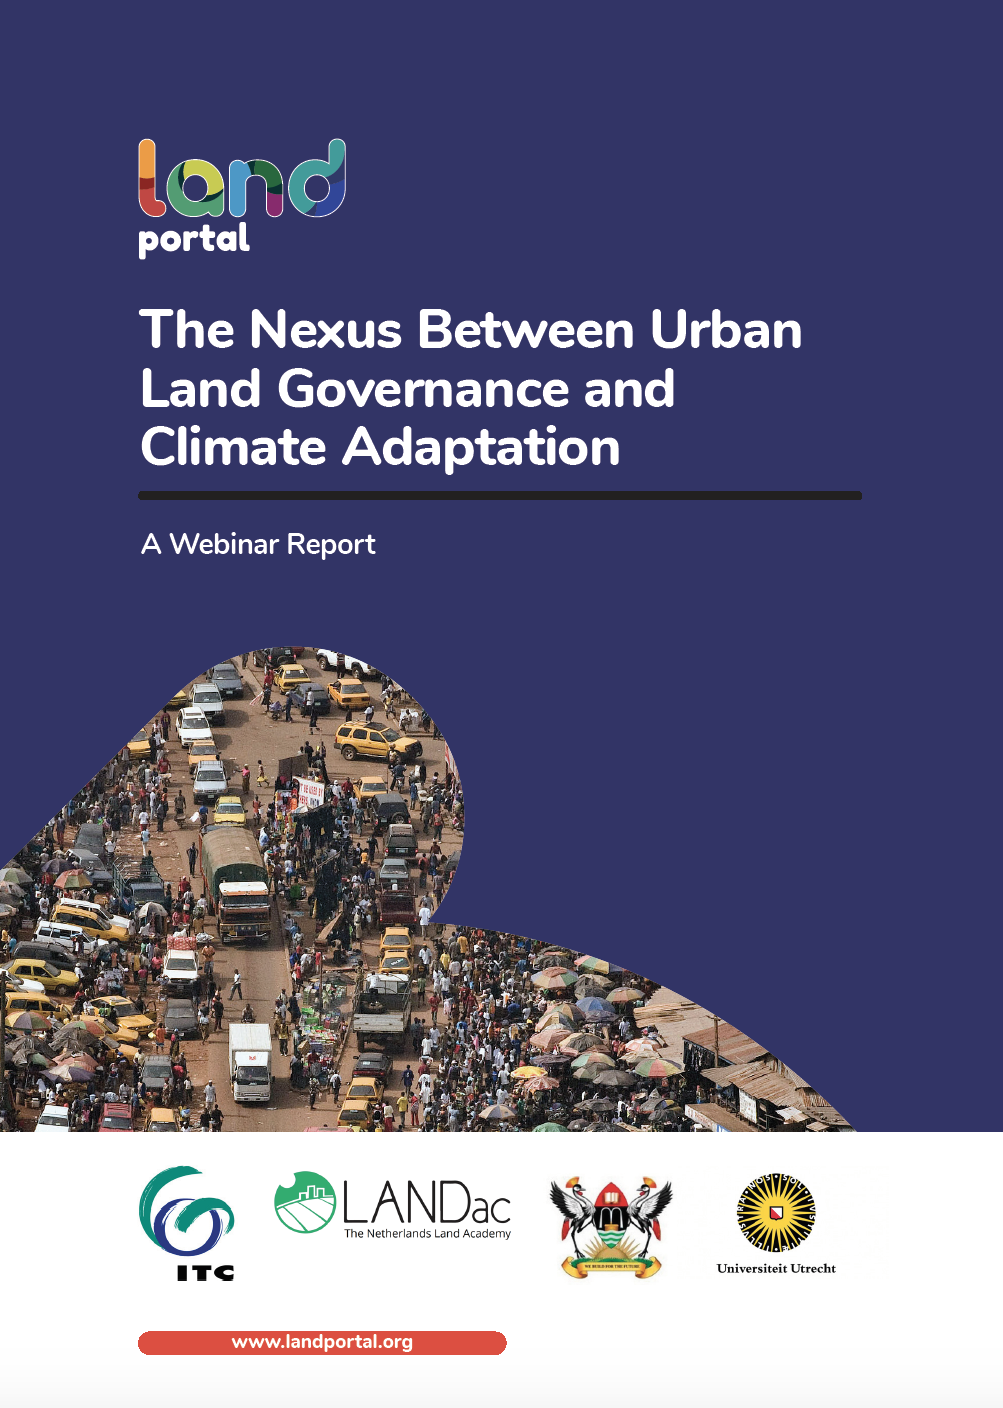 The Nexus Between Urban Land Governance and Climate Adaptation